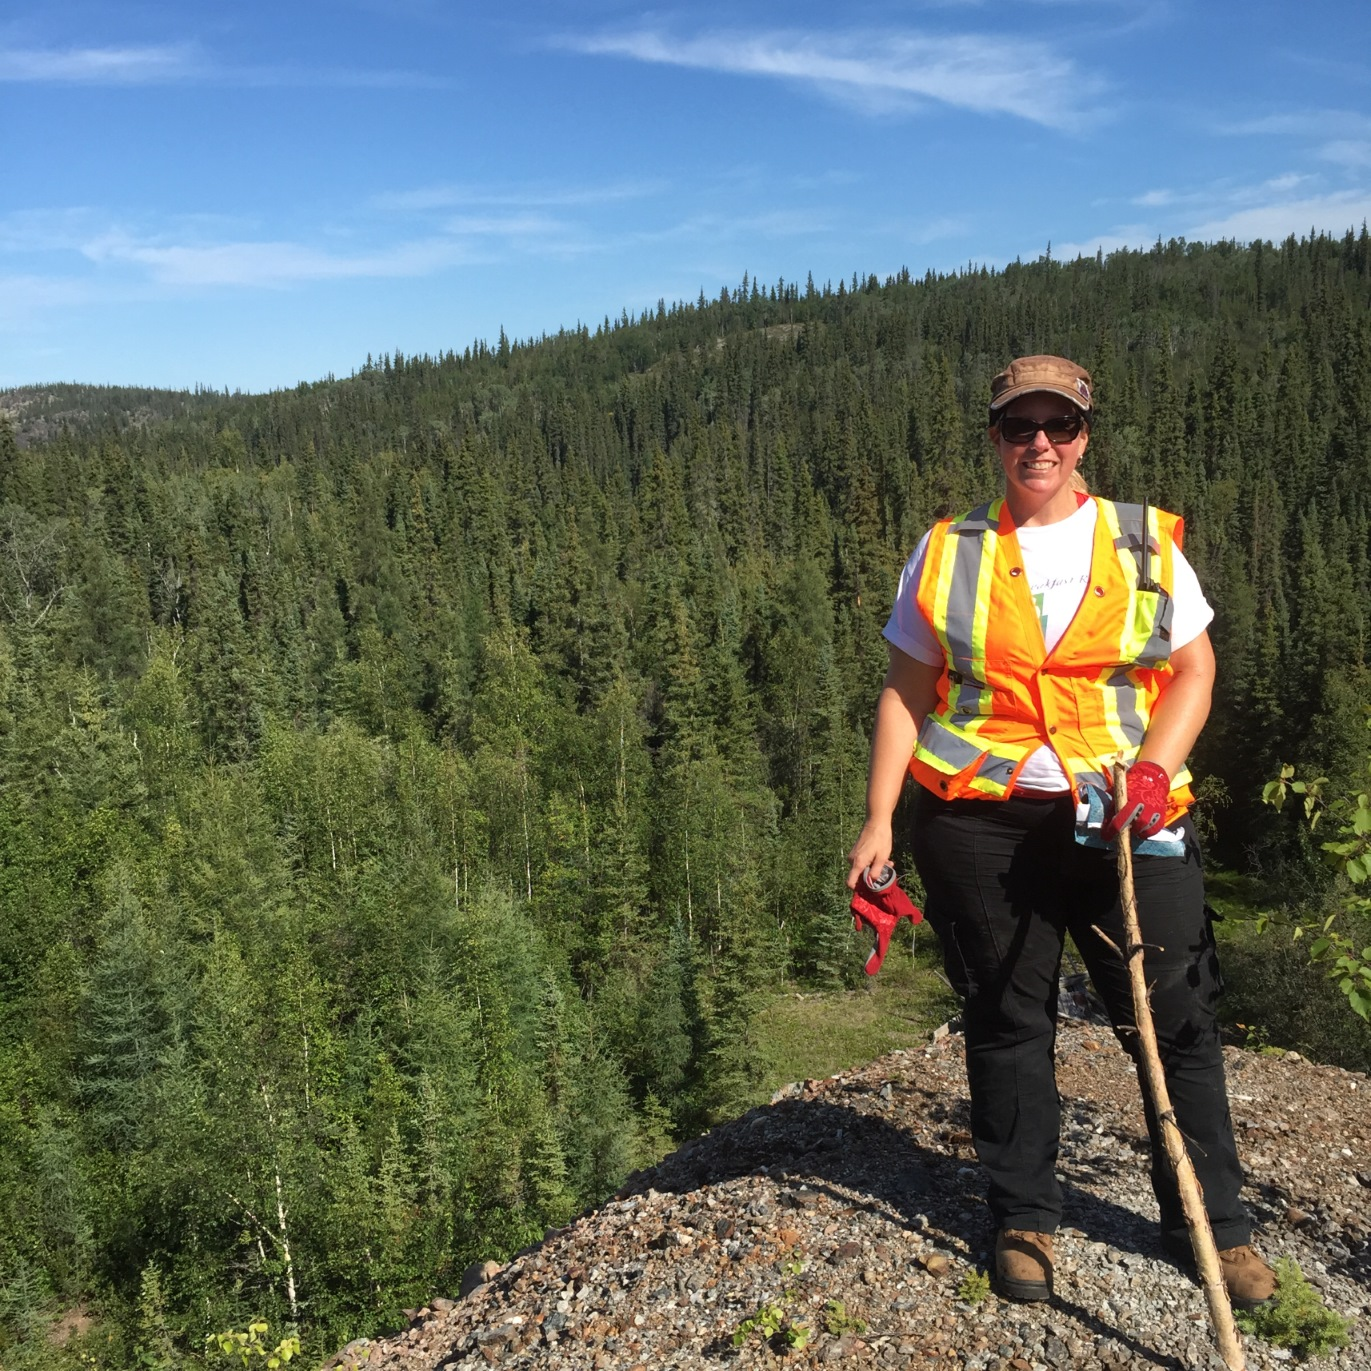 src geoscientist patty ogilvie-evans in a forested area